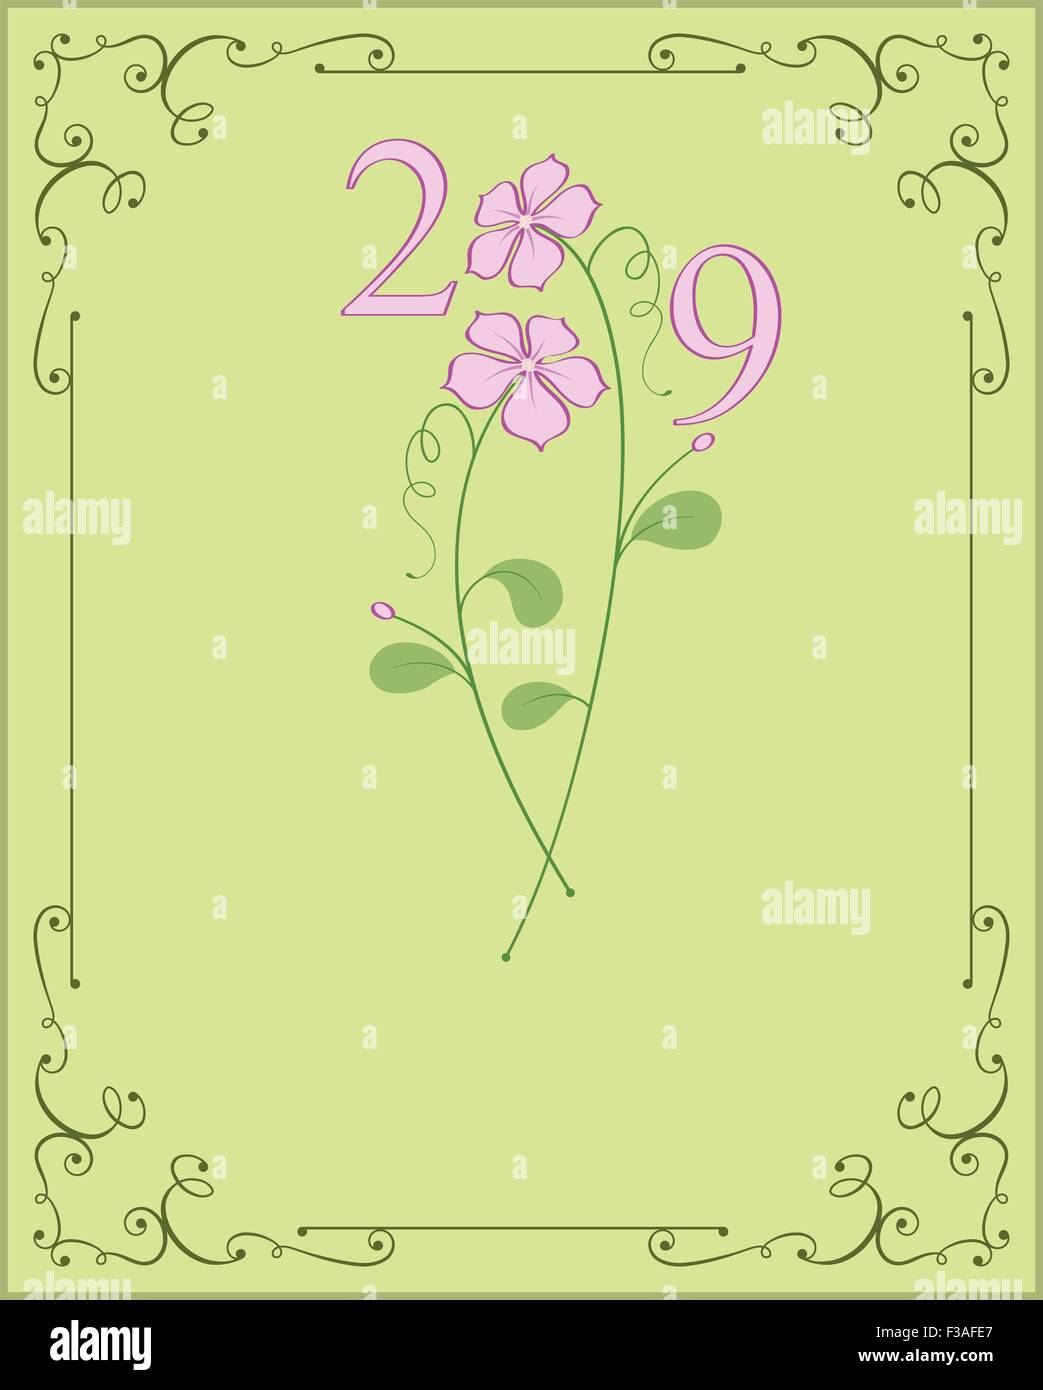 Happy New Year Design Vector Art - Stock Vector